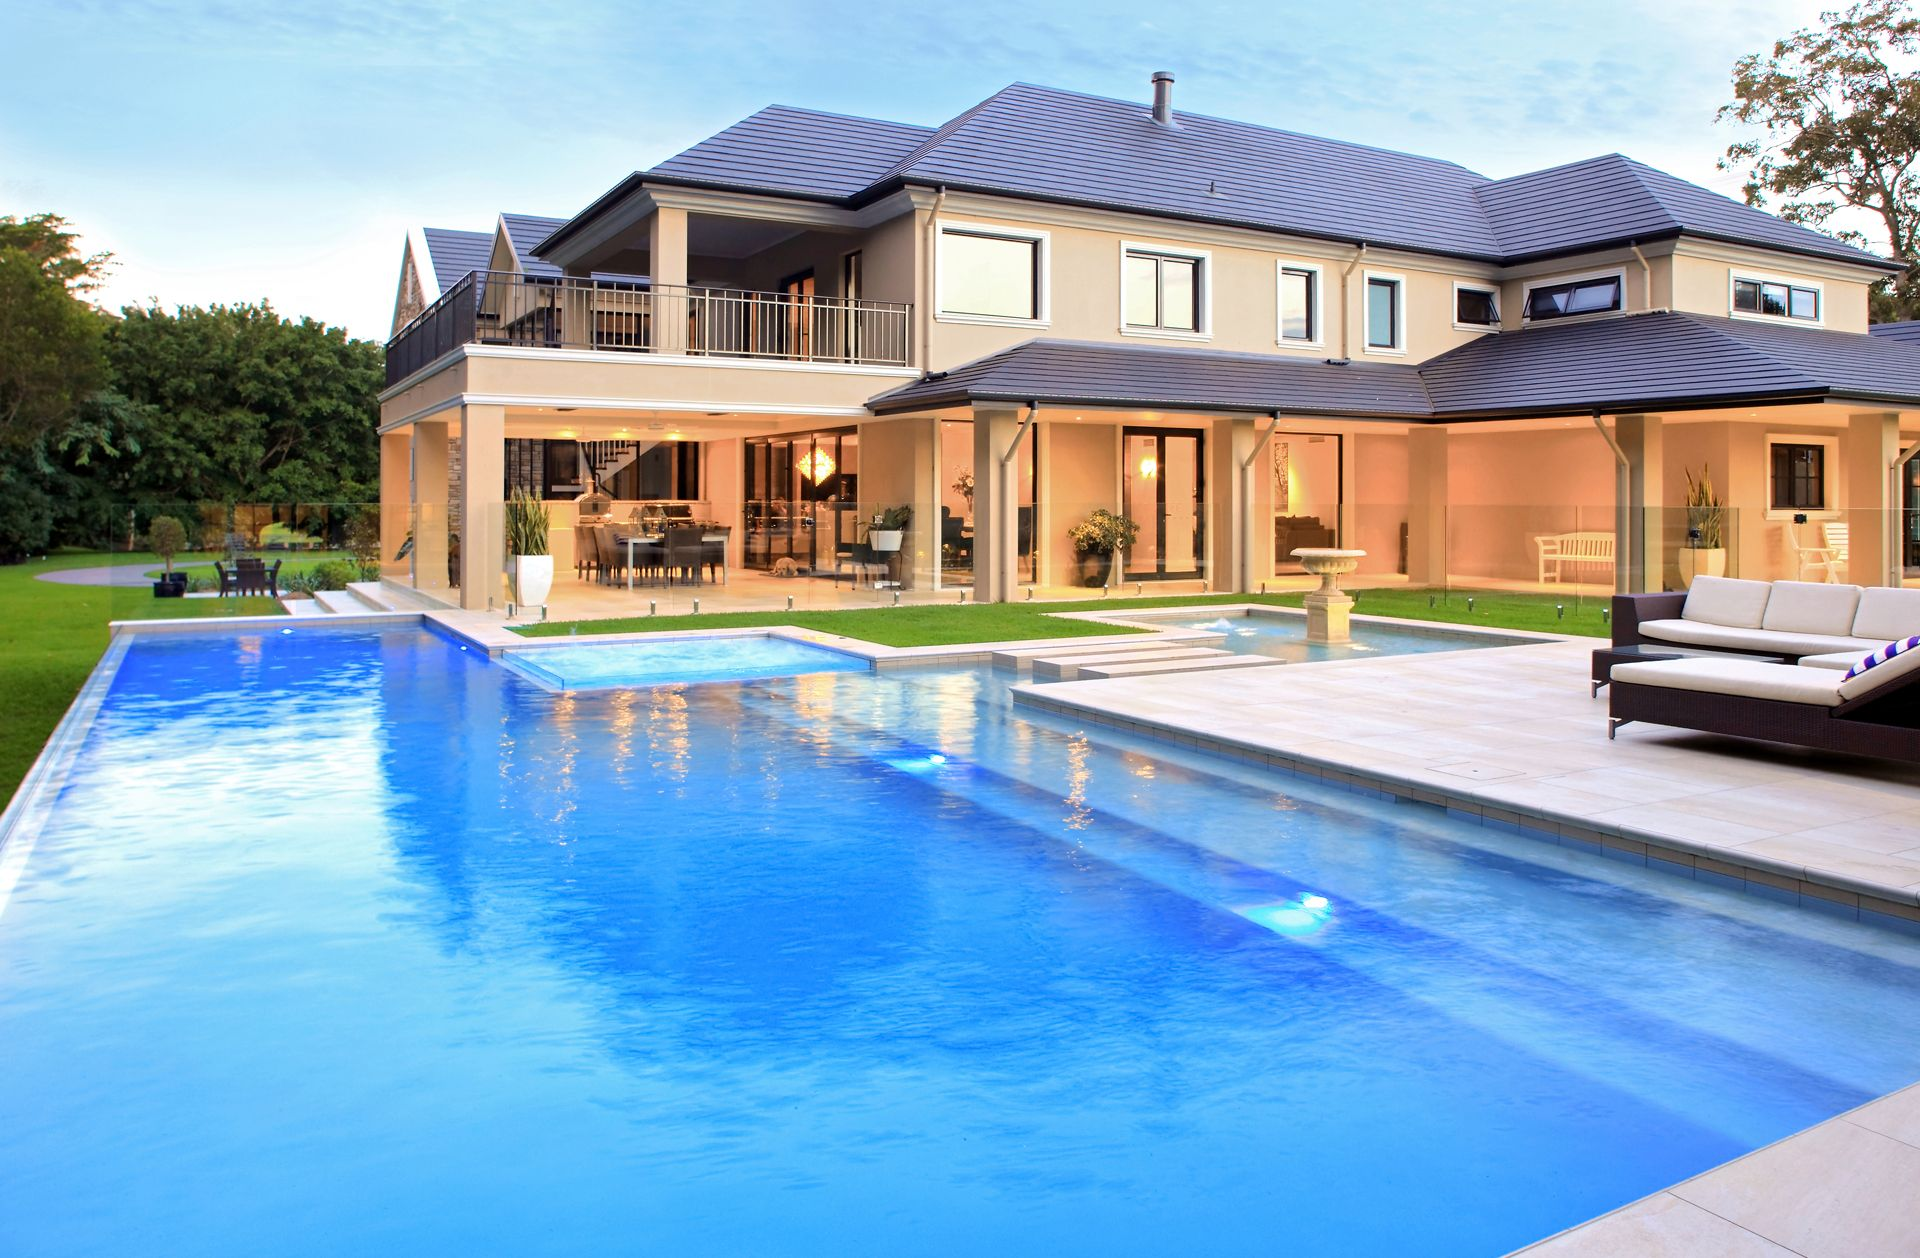 Dorset Street, Pools, Cozy, Architecture, Swimming Pools, Water Feature